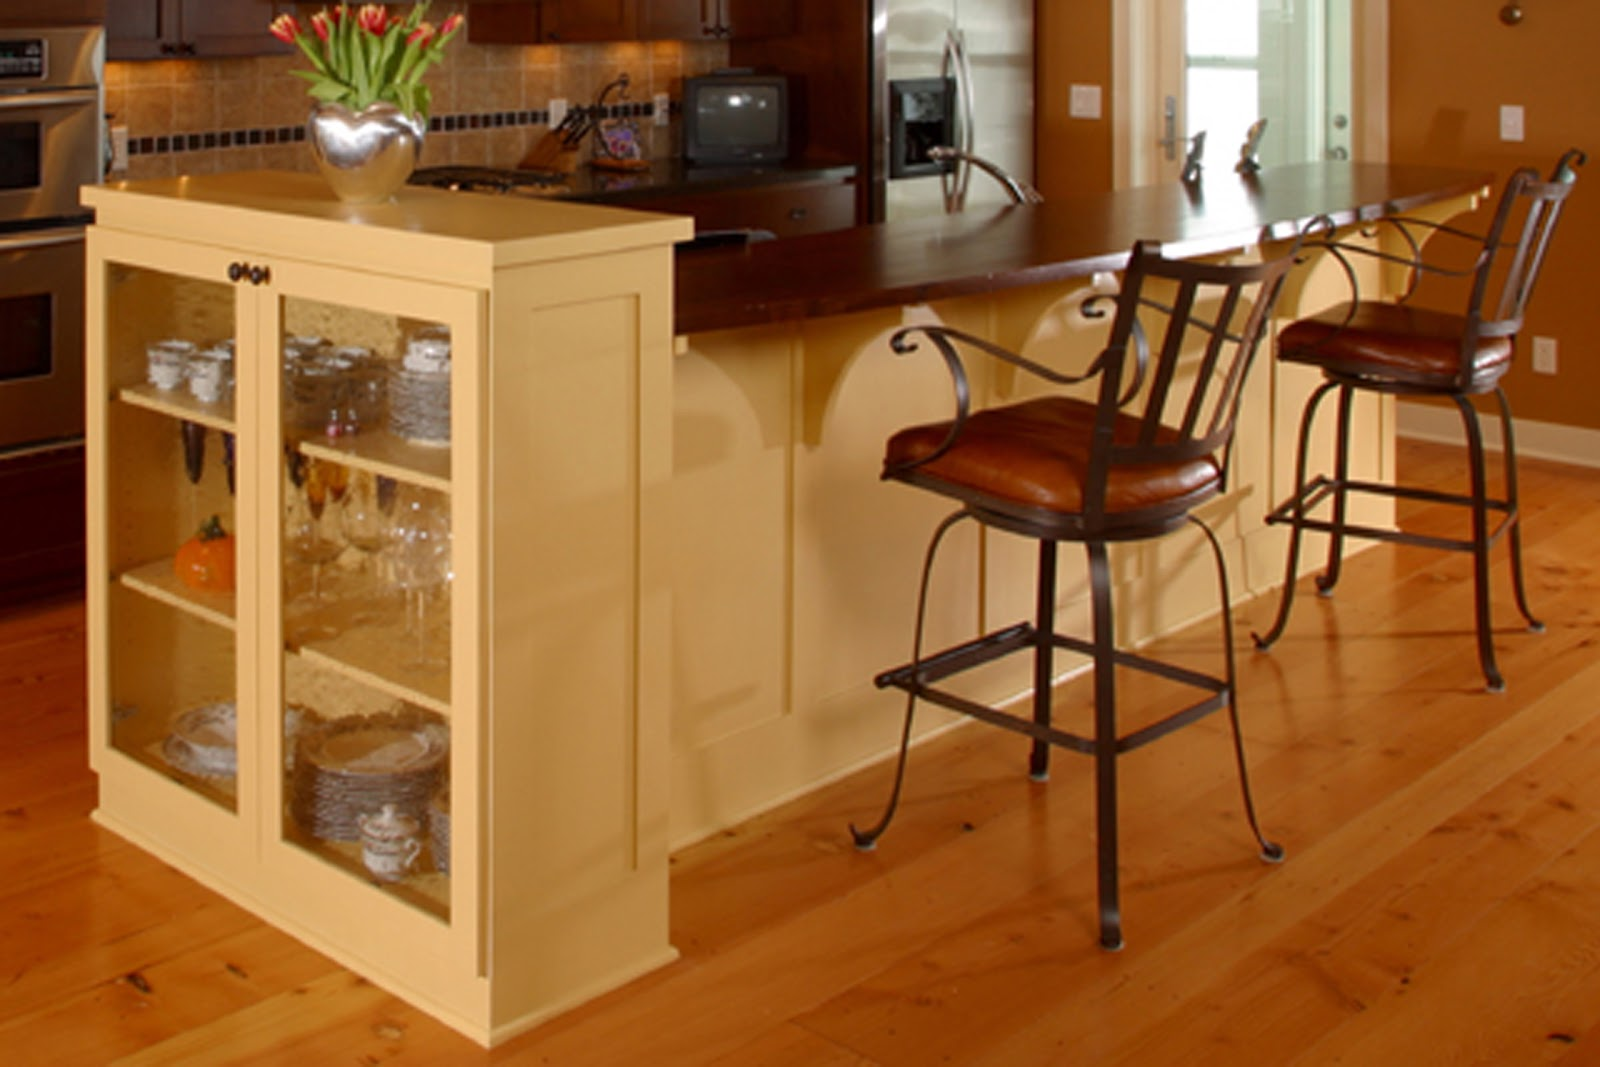 Simply Elegant Home Designs Blog: Home Design Ideas   3 Tier Kitchen Island